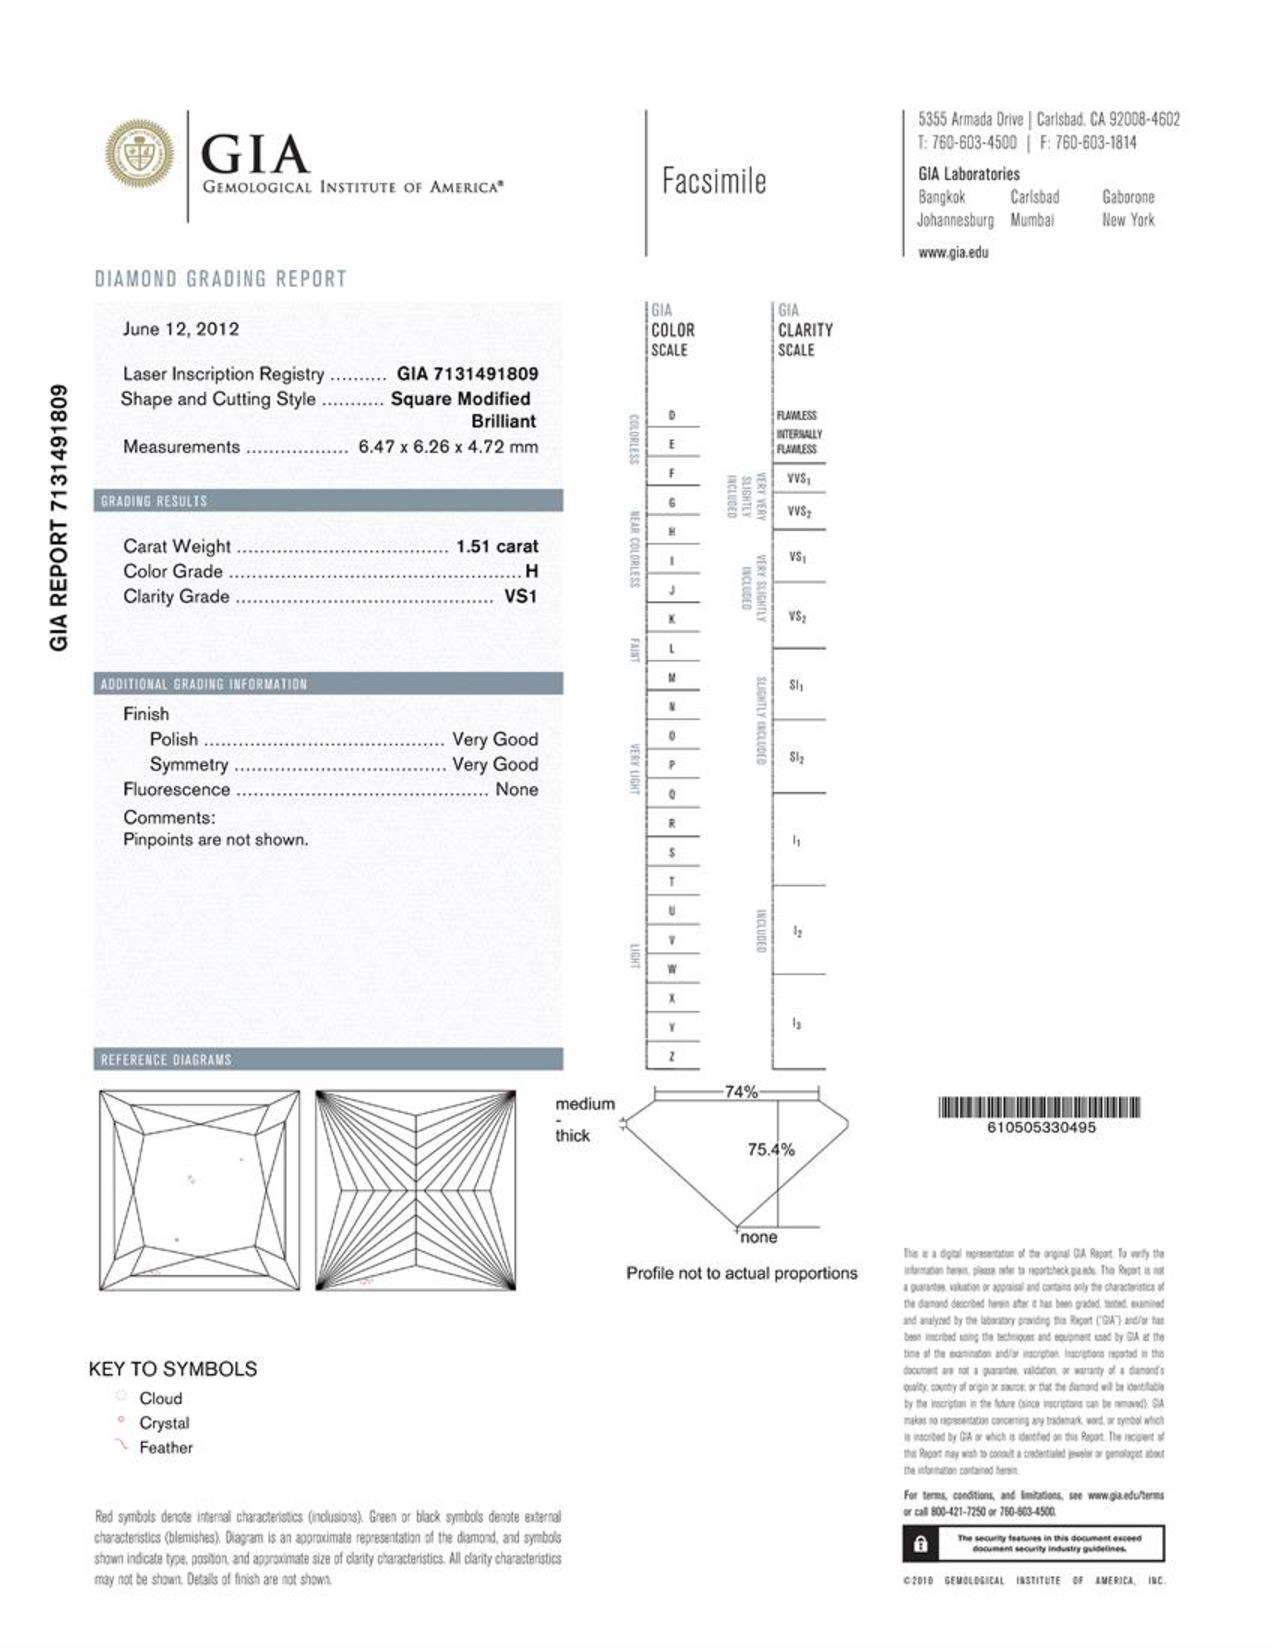 This is a 1.51 carat princess shape, H color, VS1 clarity natural diamond accompanied by a GIA grading report.